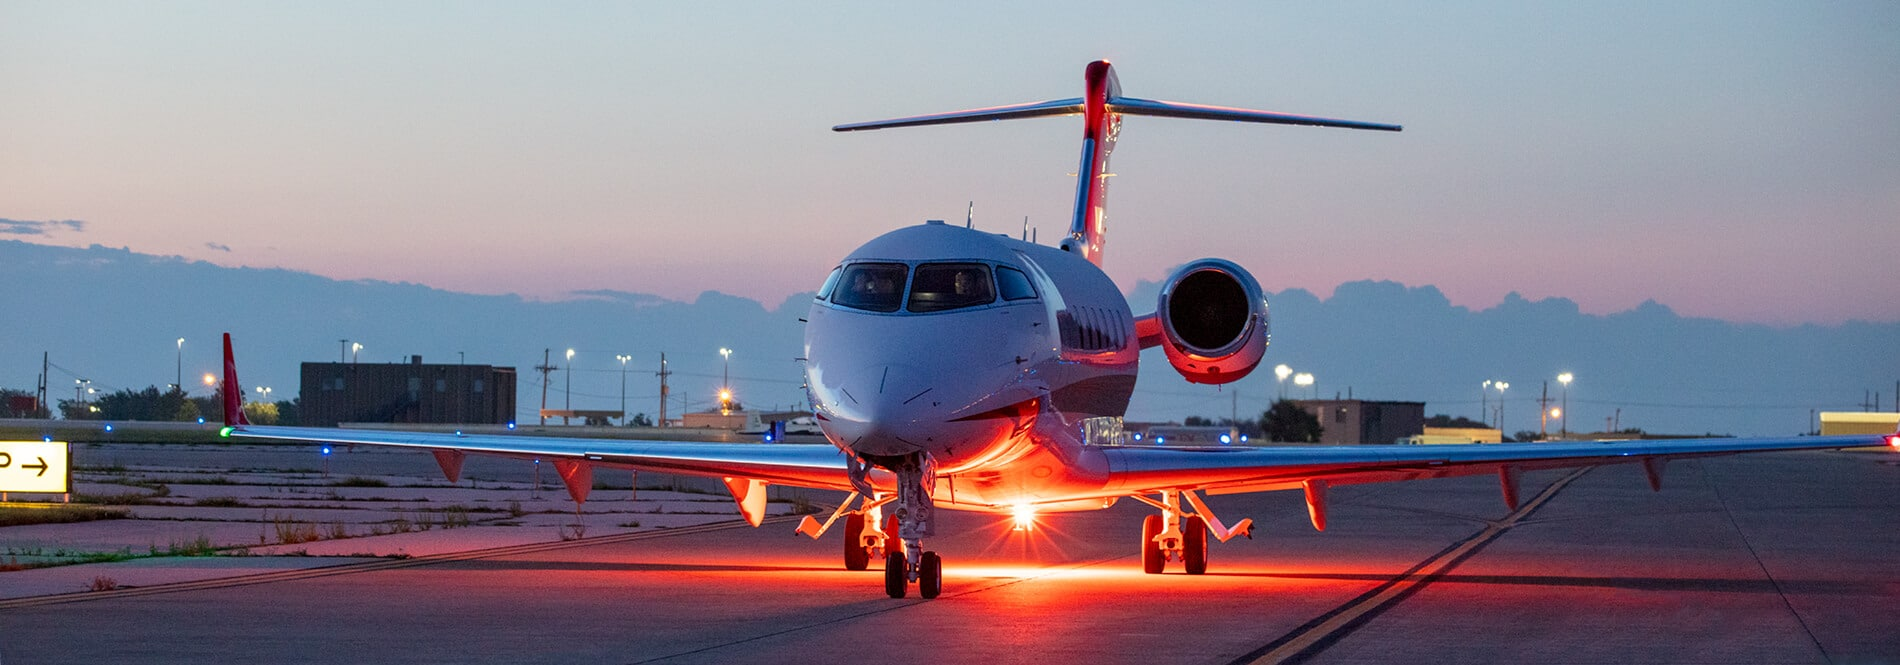 Citation Latitude Tarmac Lights